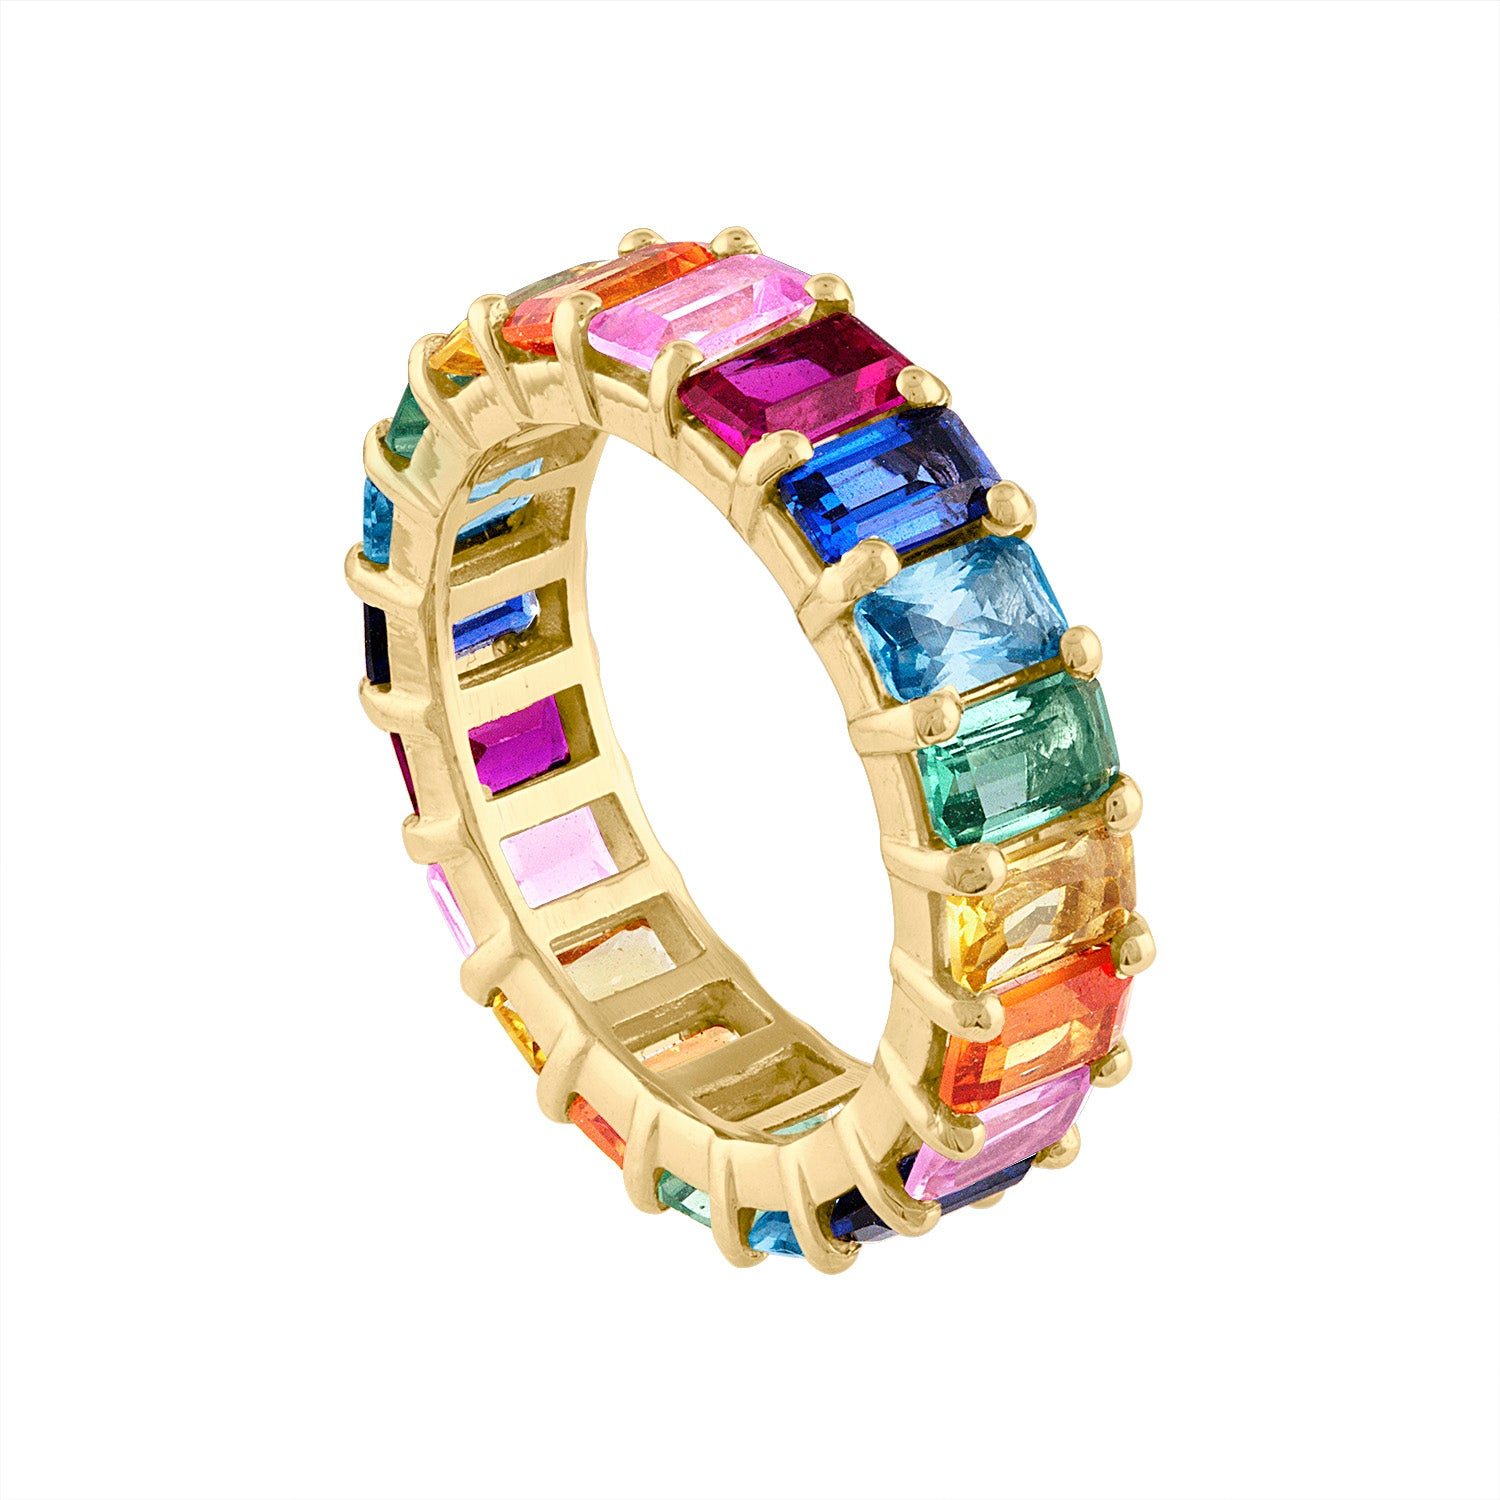 14KT GOLD EMERALD CUT MULTI-COLOR SAPPHIRE RING